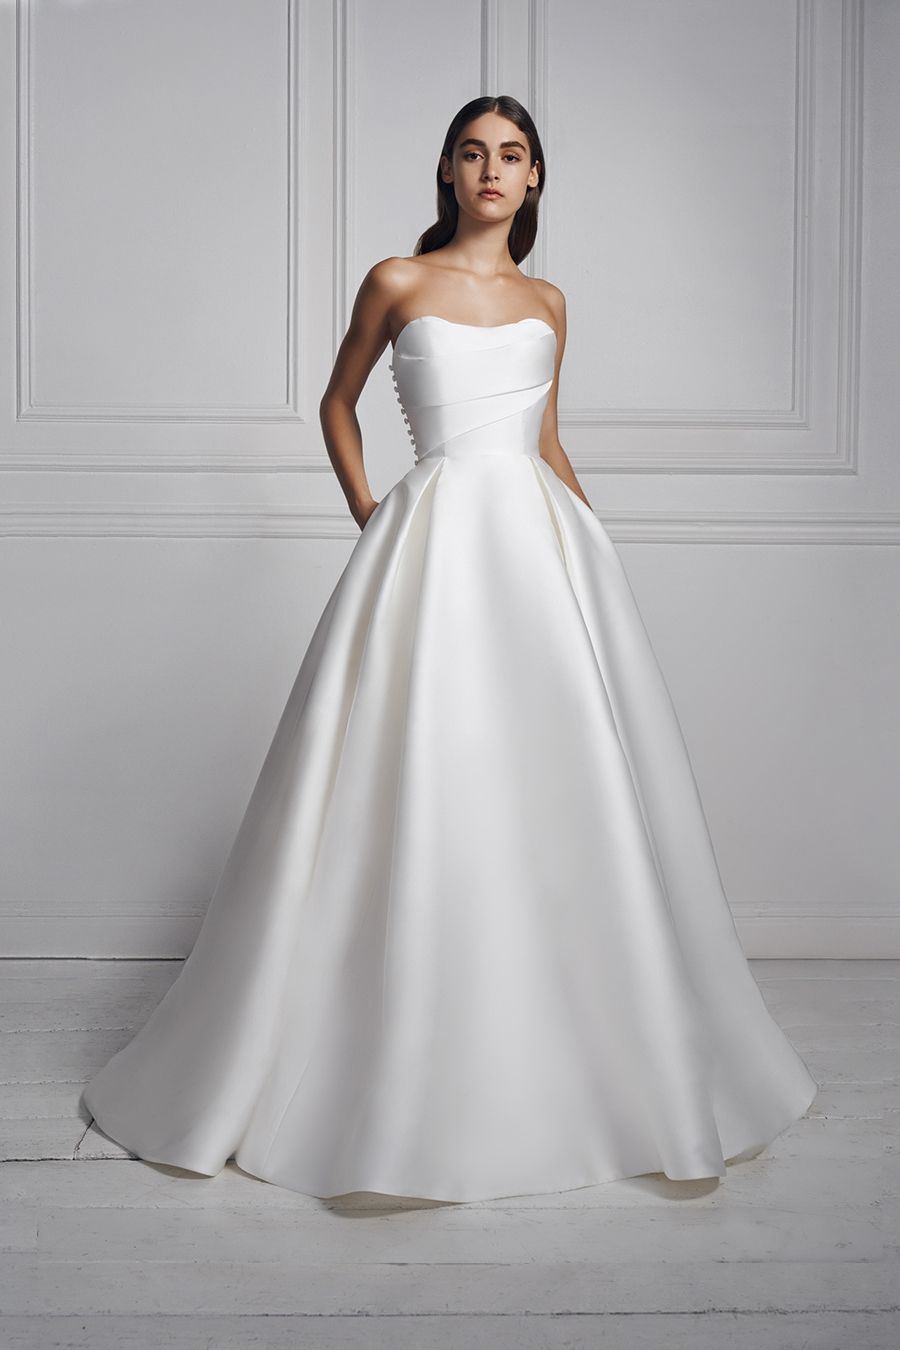 Draped Strapless Wedding Dress Of Mikado With Pleated Ball Gown Skirt By Anne B In 2020 Structured Wedding Dresses Wedding Dresses Strapless Anne Barge Wedding Dresses